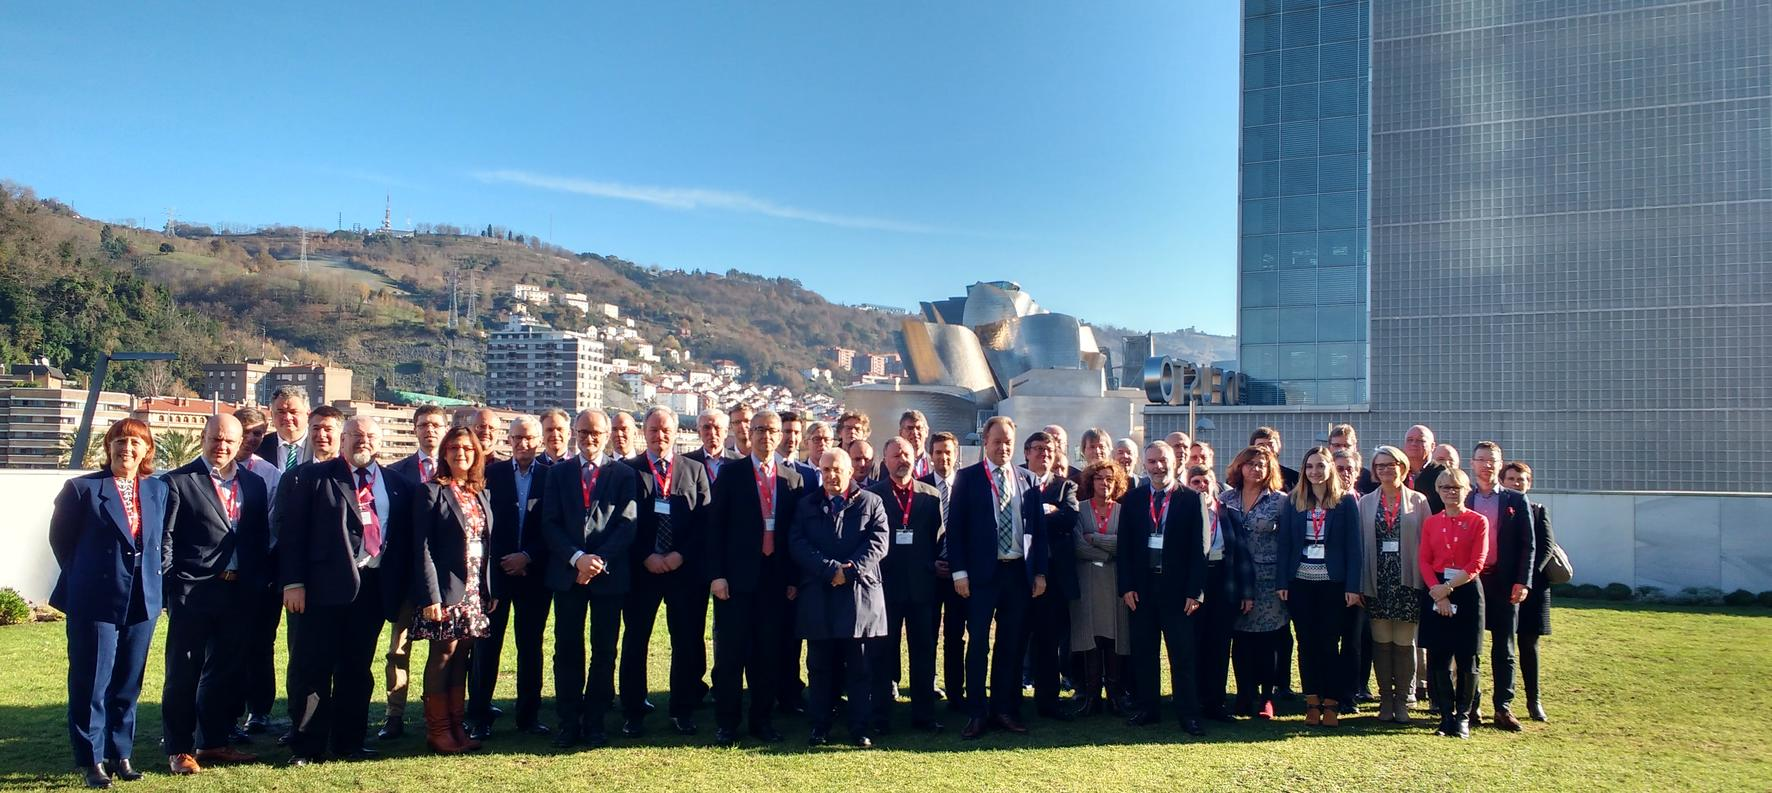 council bilbao december 2016